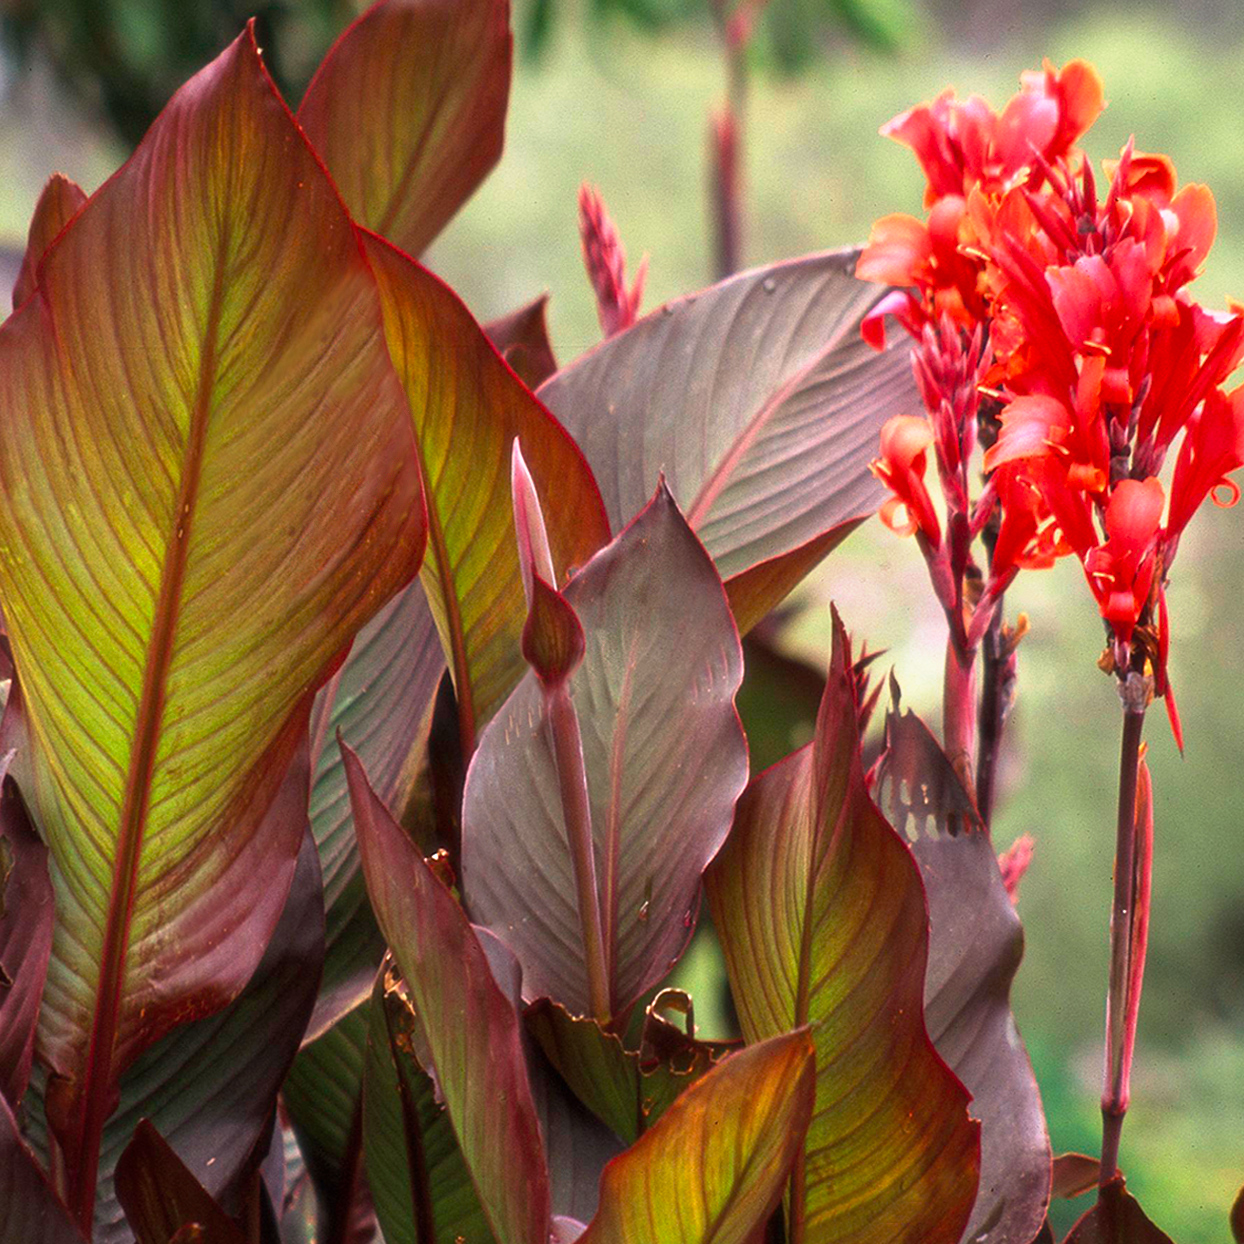 Australia canna with purple foliage and red flowers